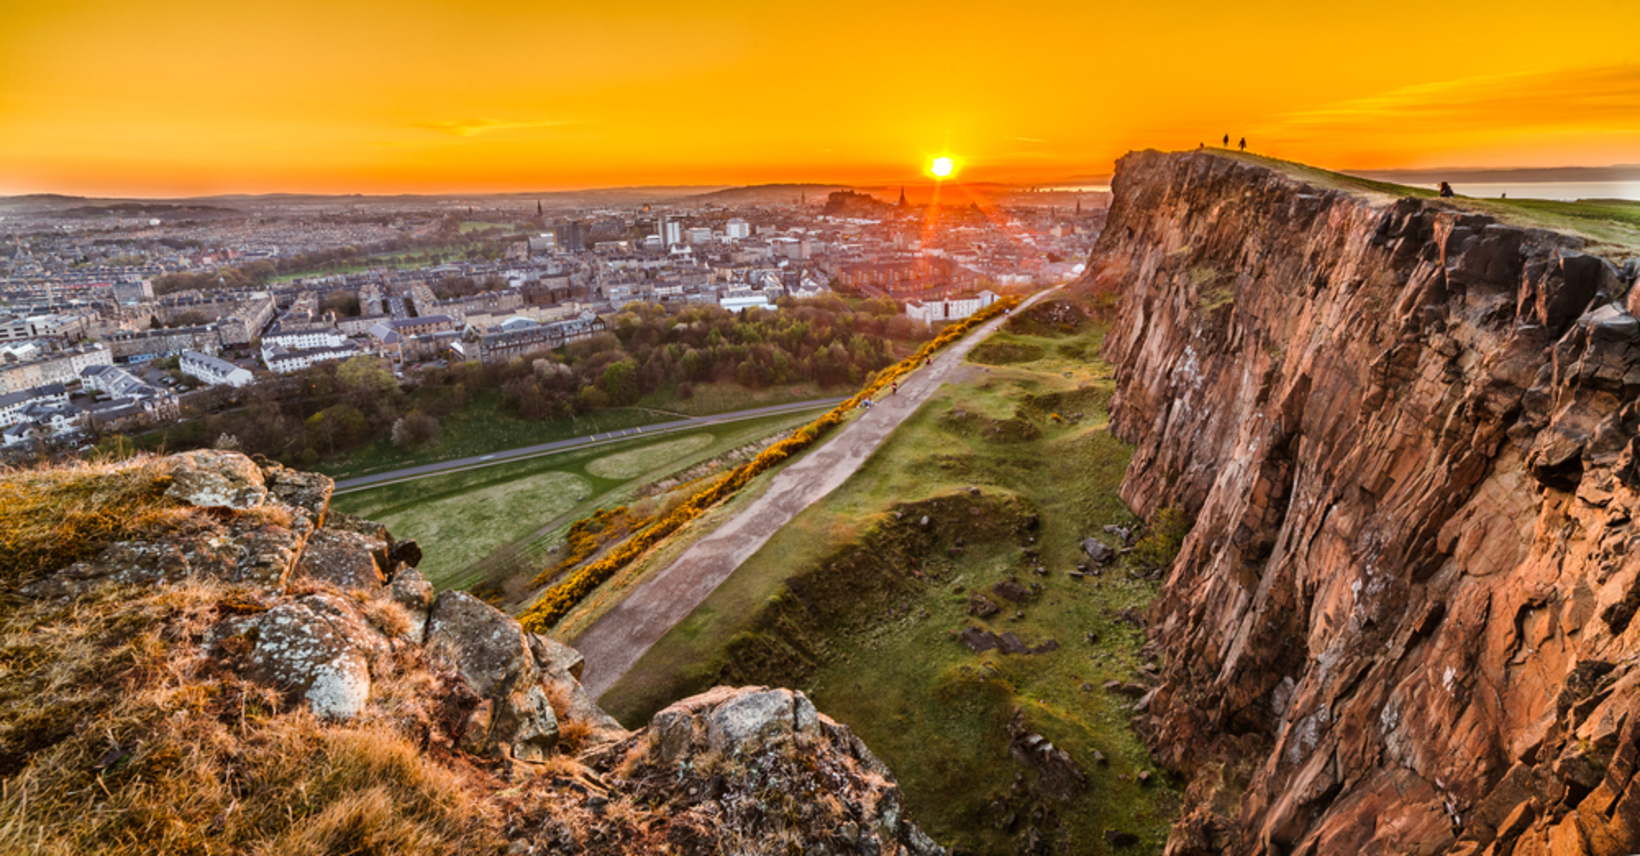 Discover Edinburgh's wild side